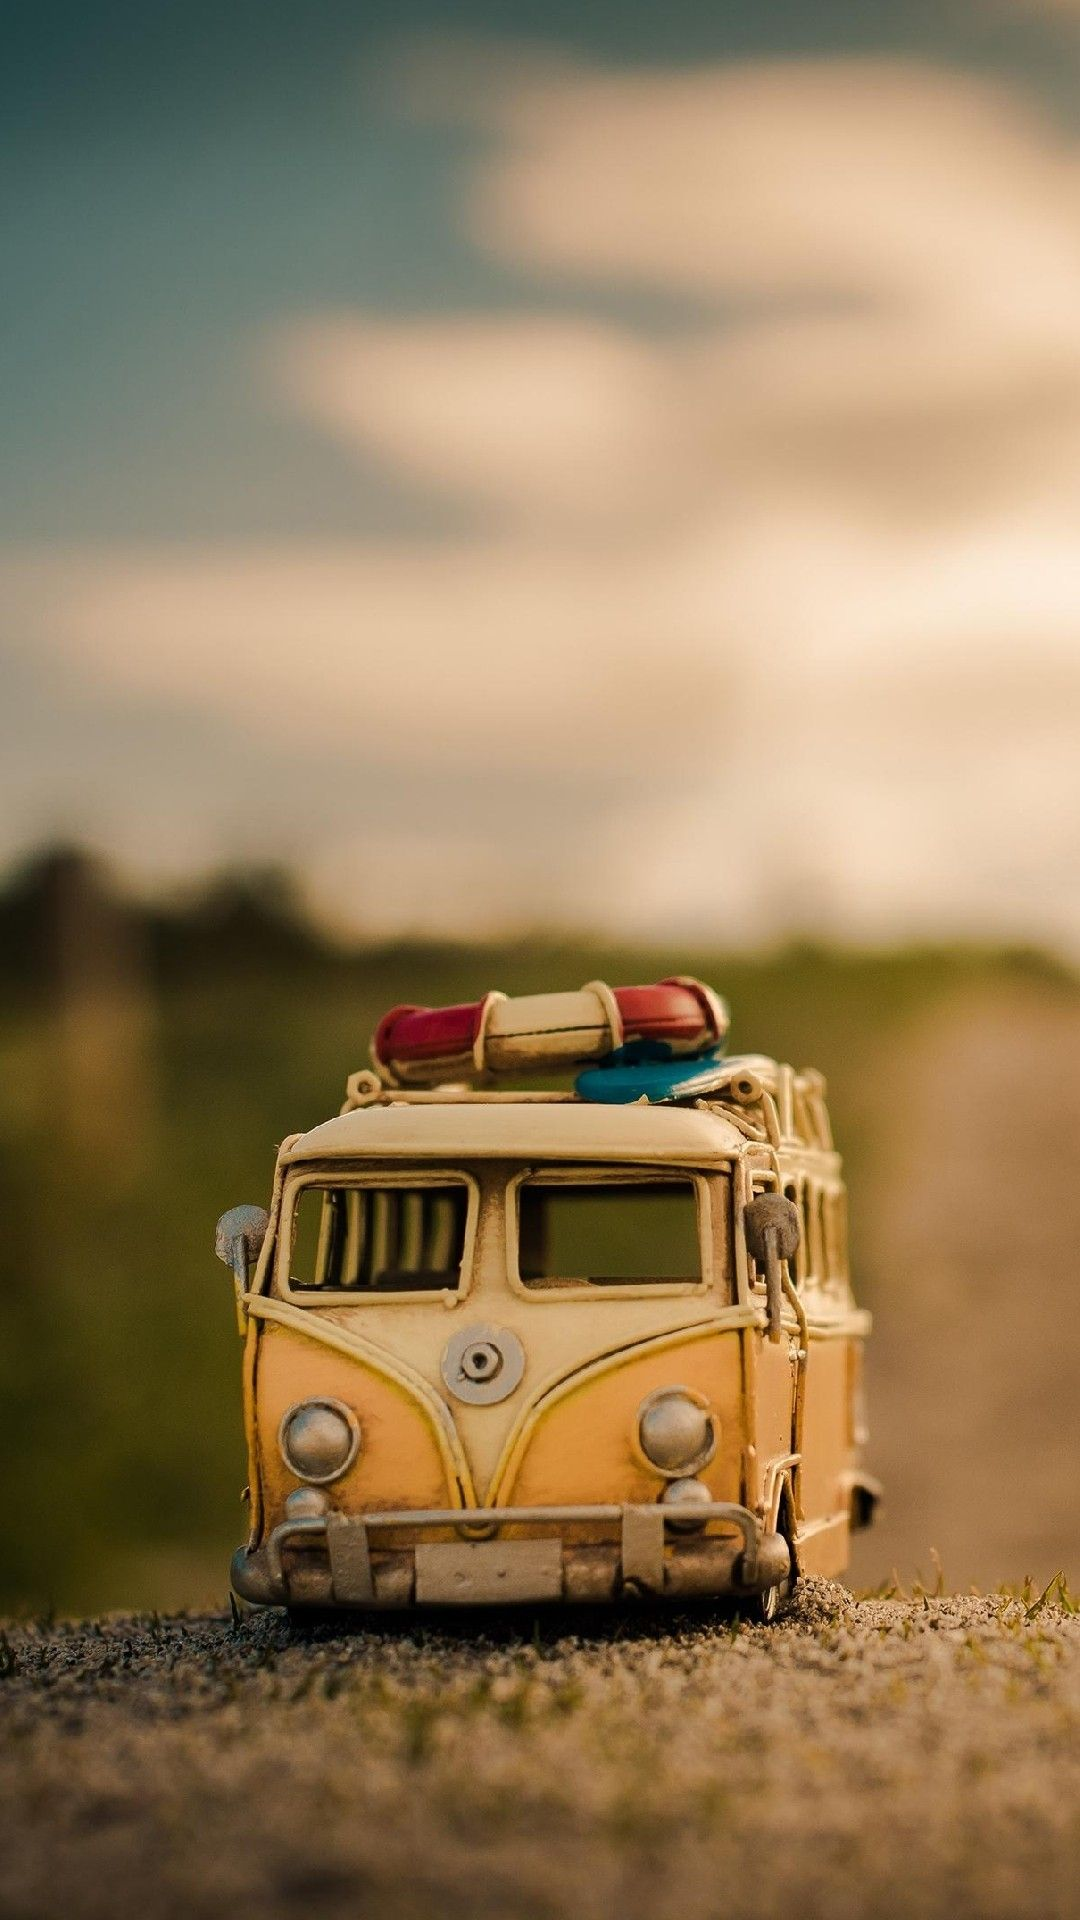 Miniature Landscapes Road Trip Cool Pictures For Wallpaper